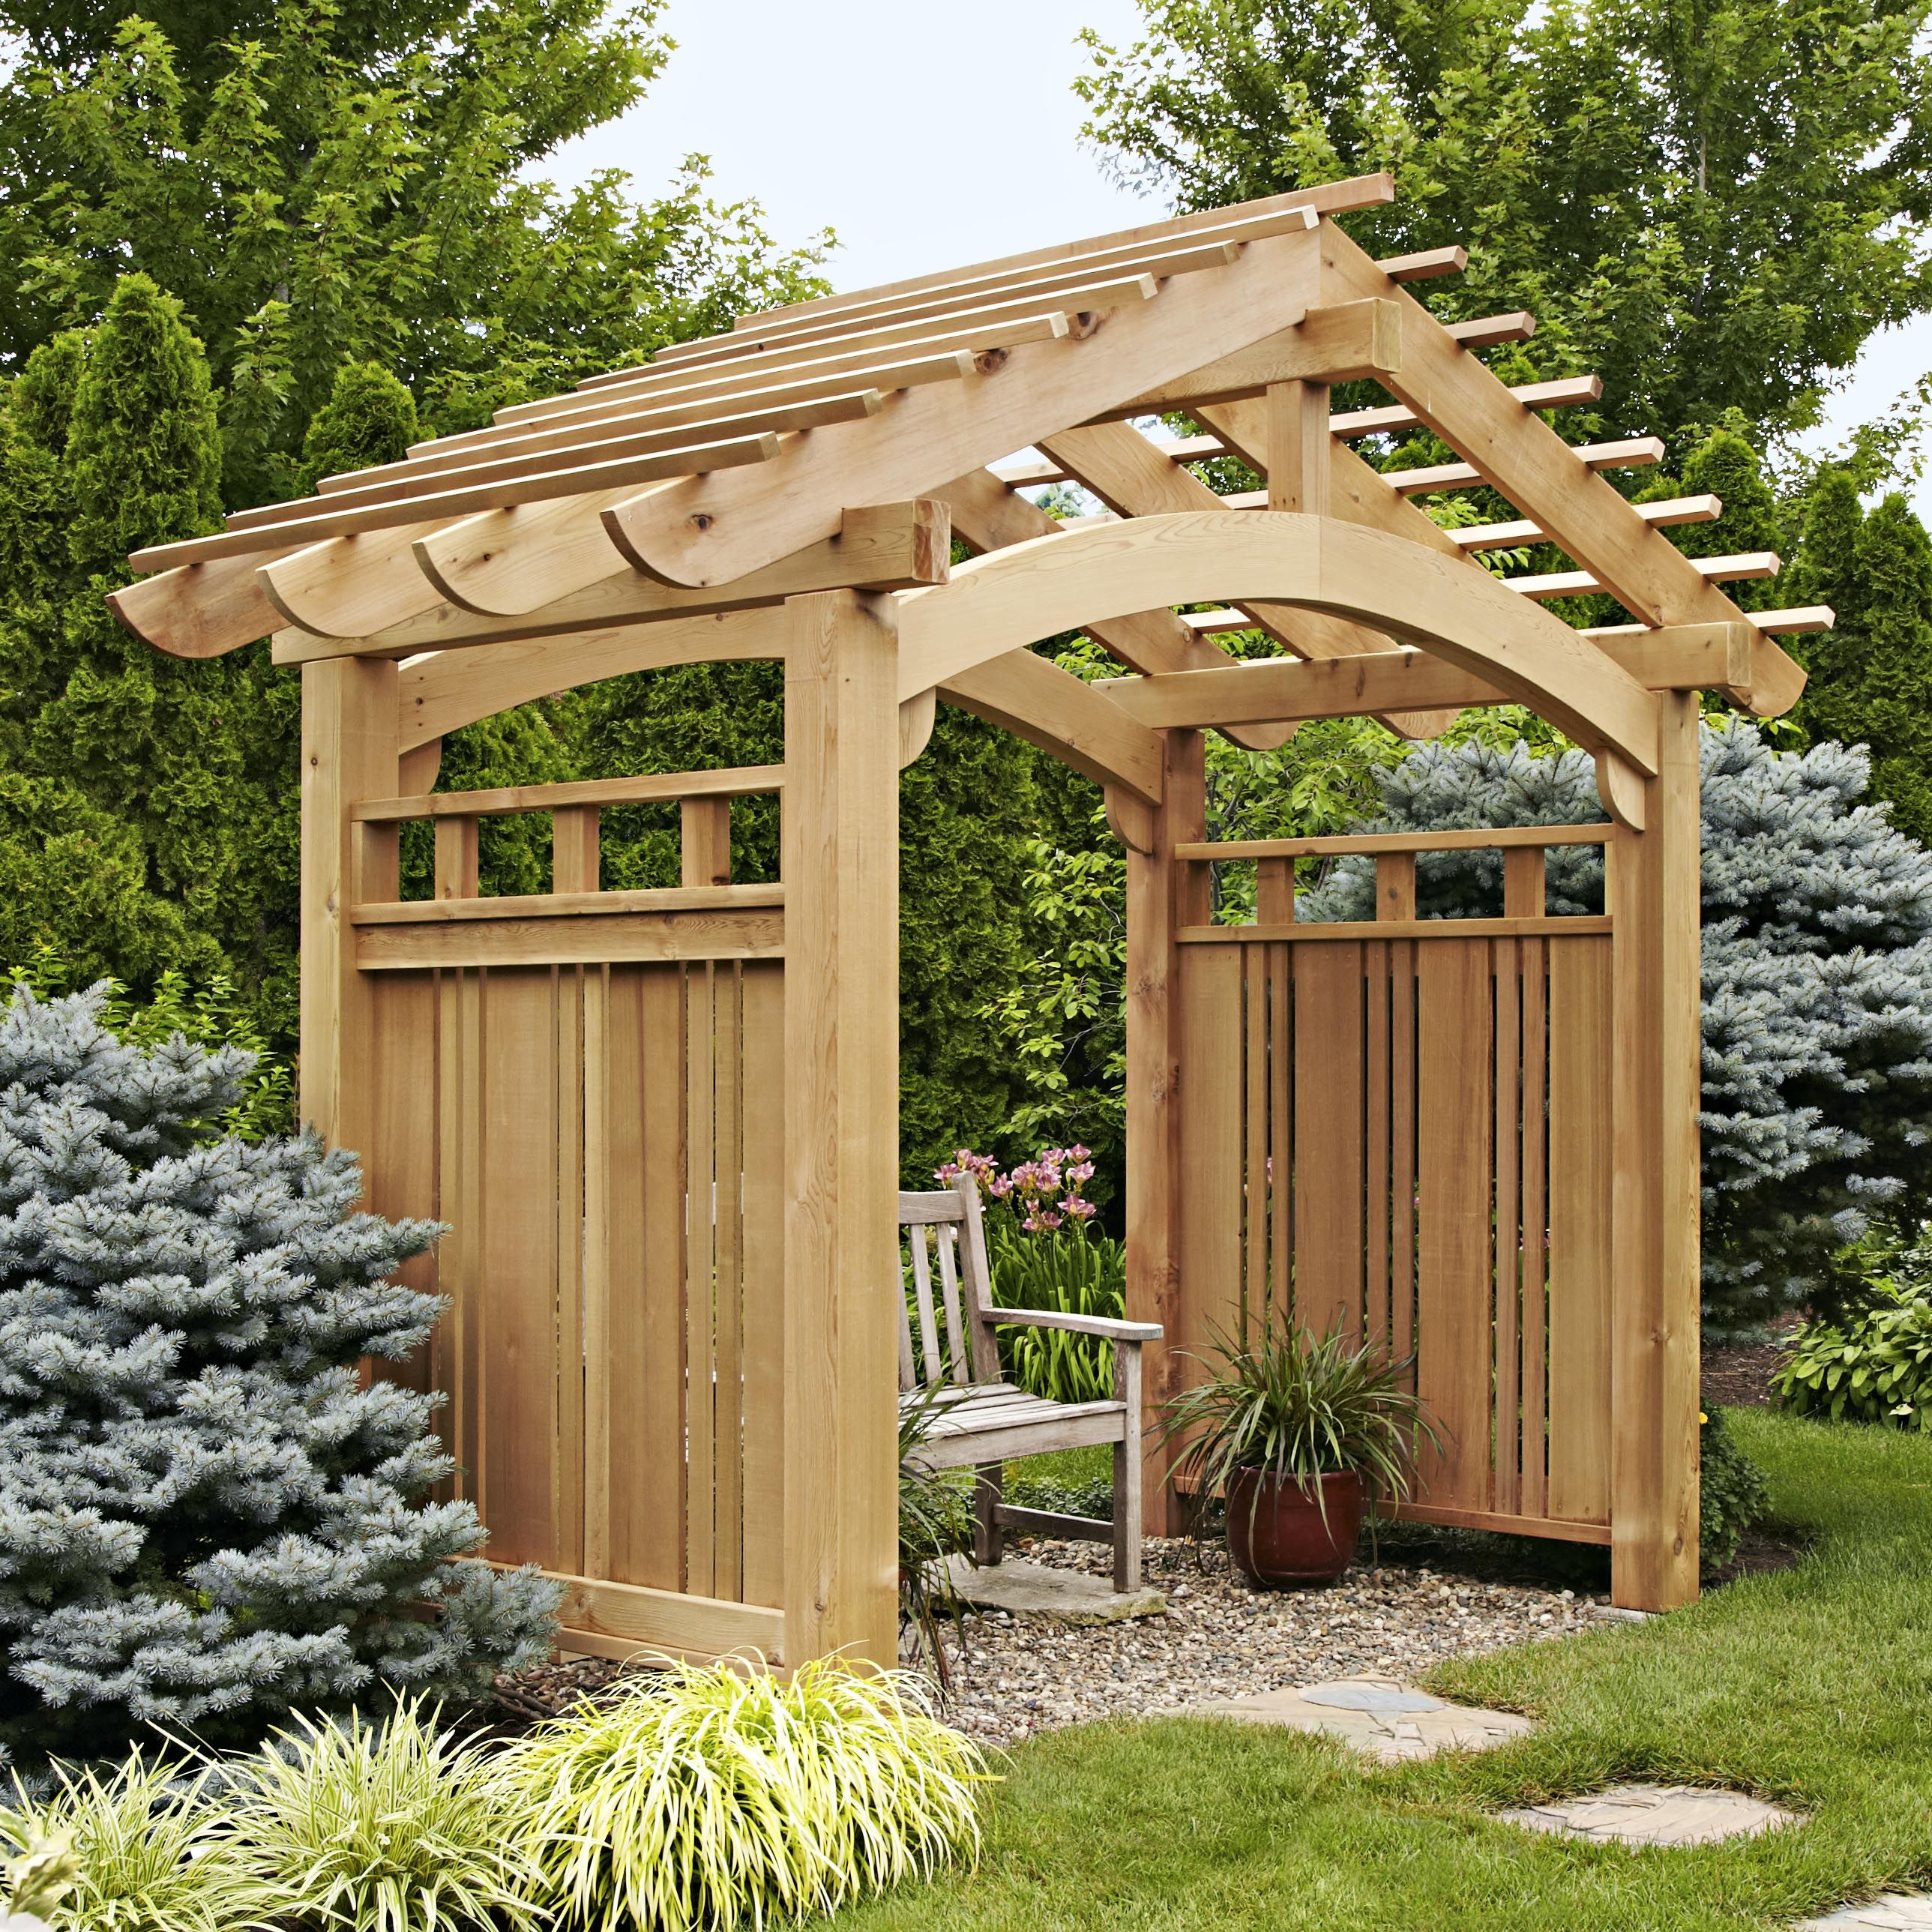 arching garden arbor woodworking plan outdoor backyard. Black Bedroom Furniture Sets. Home Design Ideas